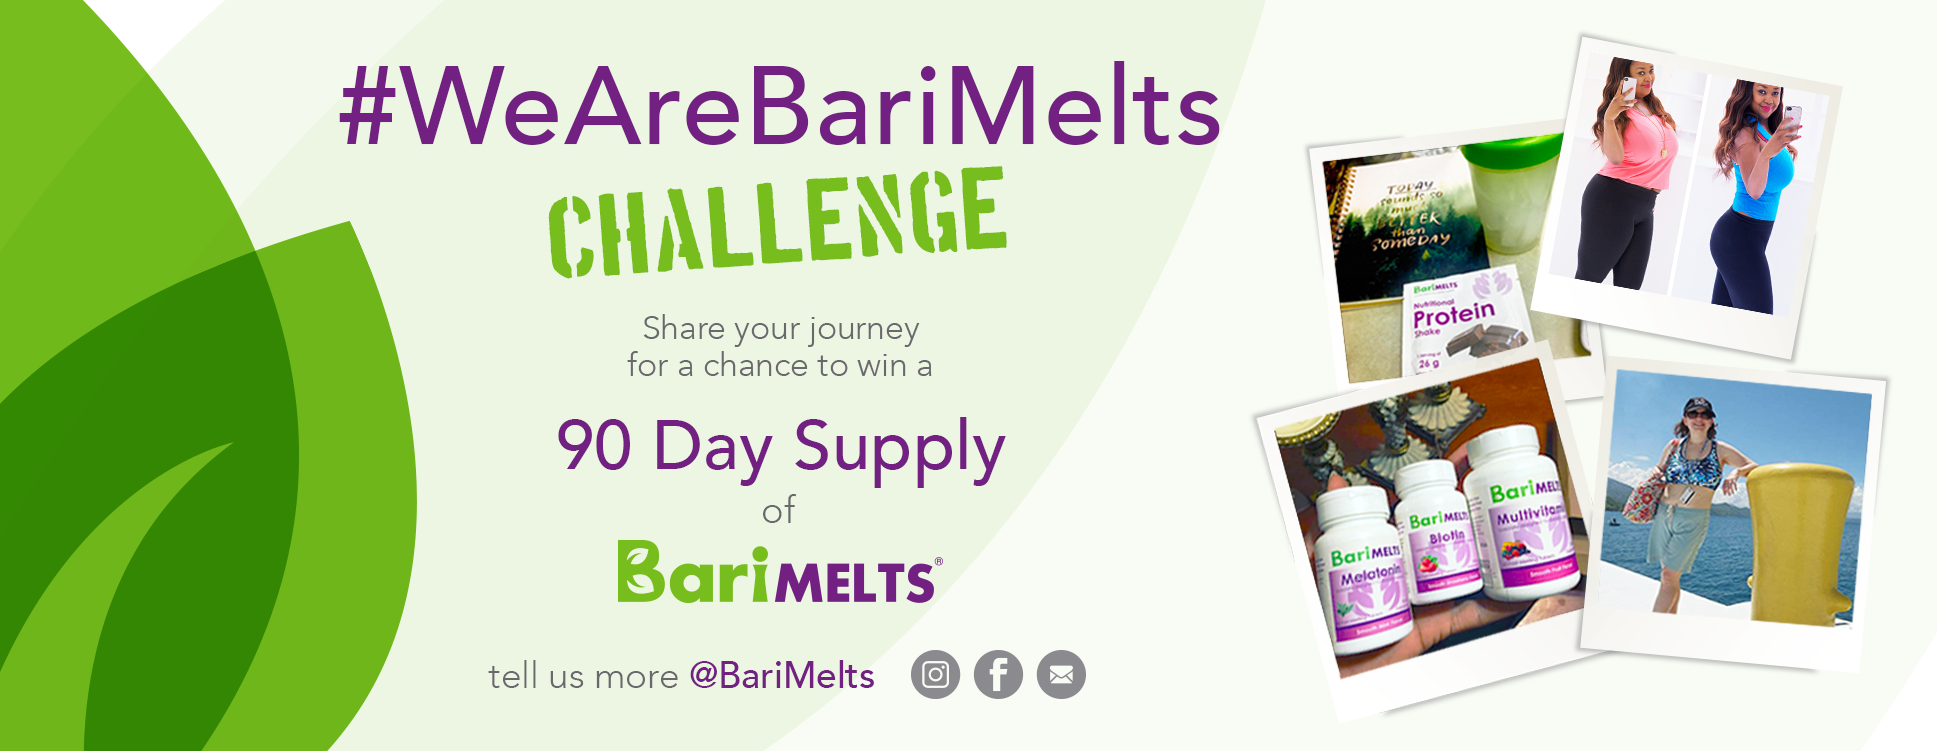 Share Your WLS Journey With Us and WIN! #WeAreBariMelts